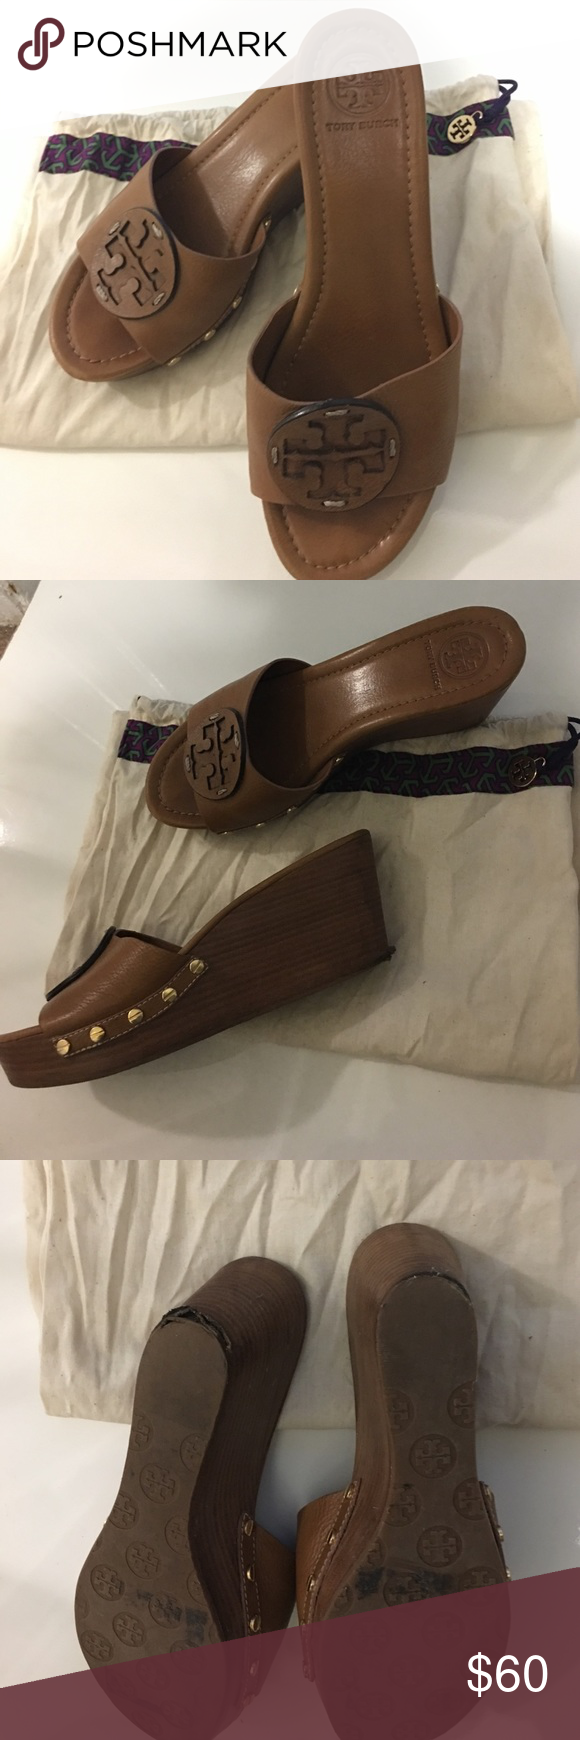 Authentic Tory Burch Patti Wedge Authentic Tory Burch Patti wedge. Brown. Size 9. No box but comes with Authentic Tory Burch dust bag. As is. Left shoe has some minor peeling by back heel - nothing a local shoe repair can't fix. Still in good condition. Lots of life left. No trades. PRICE IS FIRM. THIS IS A STEAL Tory Burch Shoes Wedges